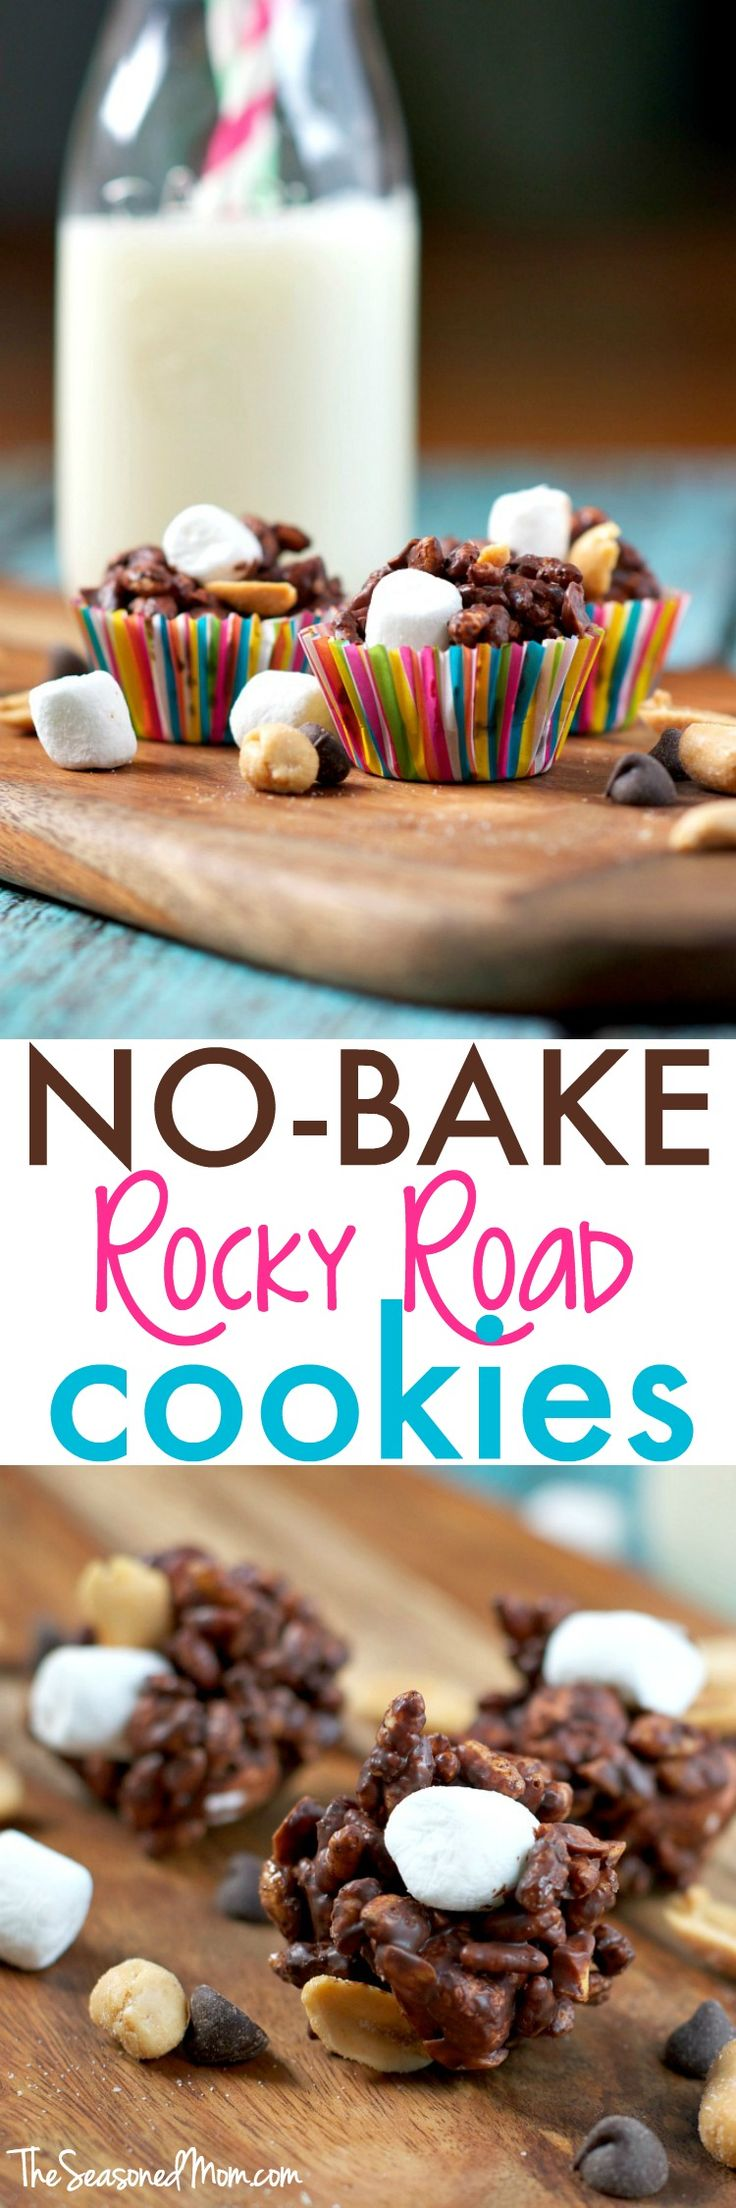 Another family favorite dessert inspired by Aunt Bee's classic recipe box, these 5-Ingredient No Bake Rocky Road Cookies are a delicious 10-minute treat to beat the heat! Loaded with chocolate, peanuts, marshmallows, and Rice Krispies, this is a simple and easy way to satisfy your taste for salty-and-sweet!